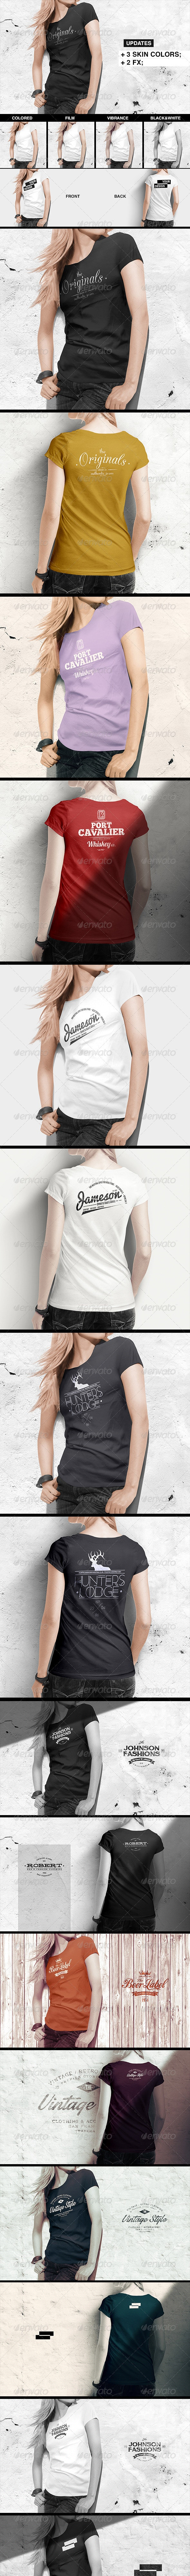 Women T-Shirt Mock-Up - T-shirts Apparel